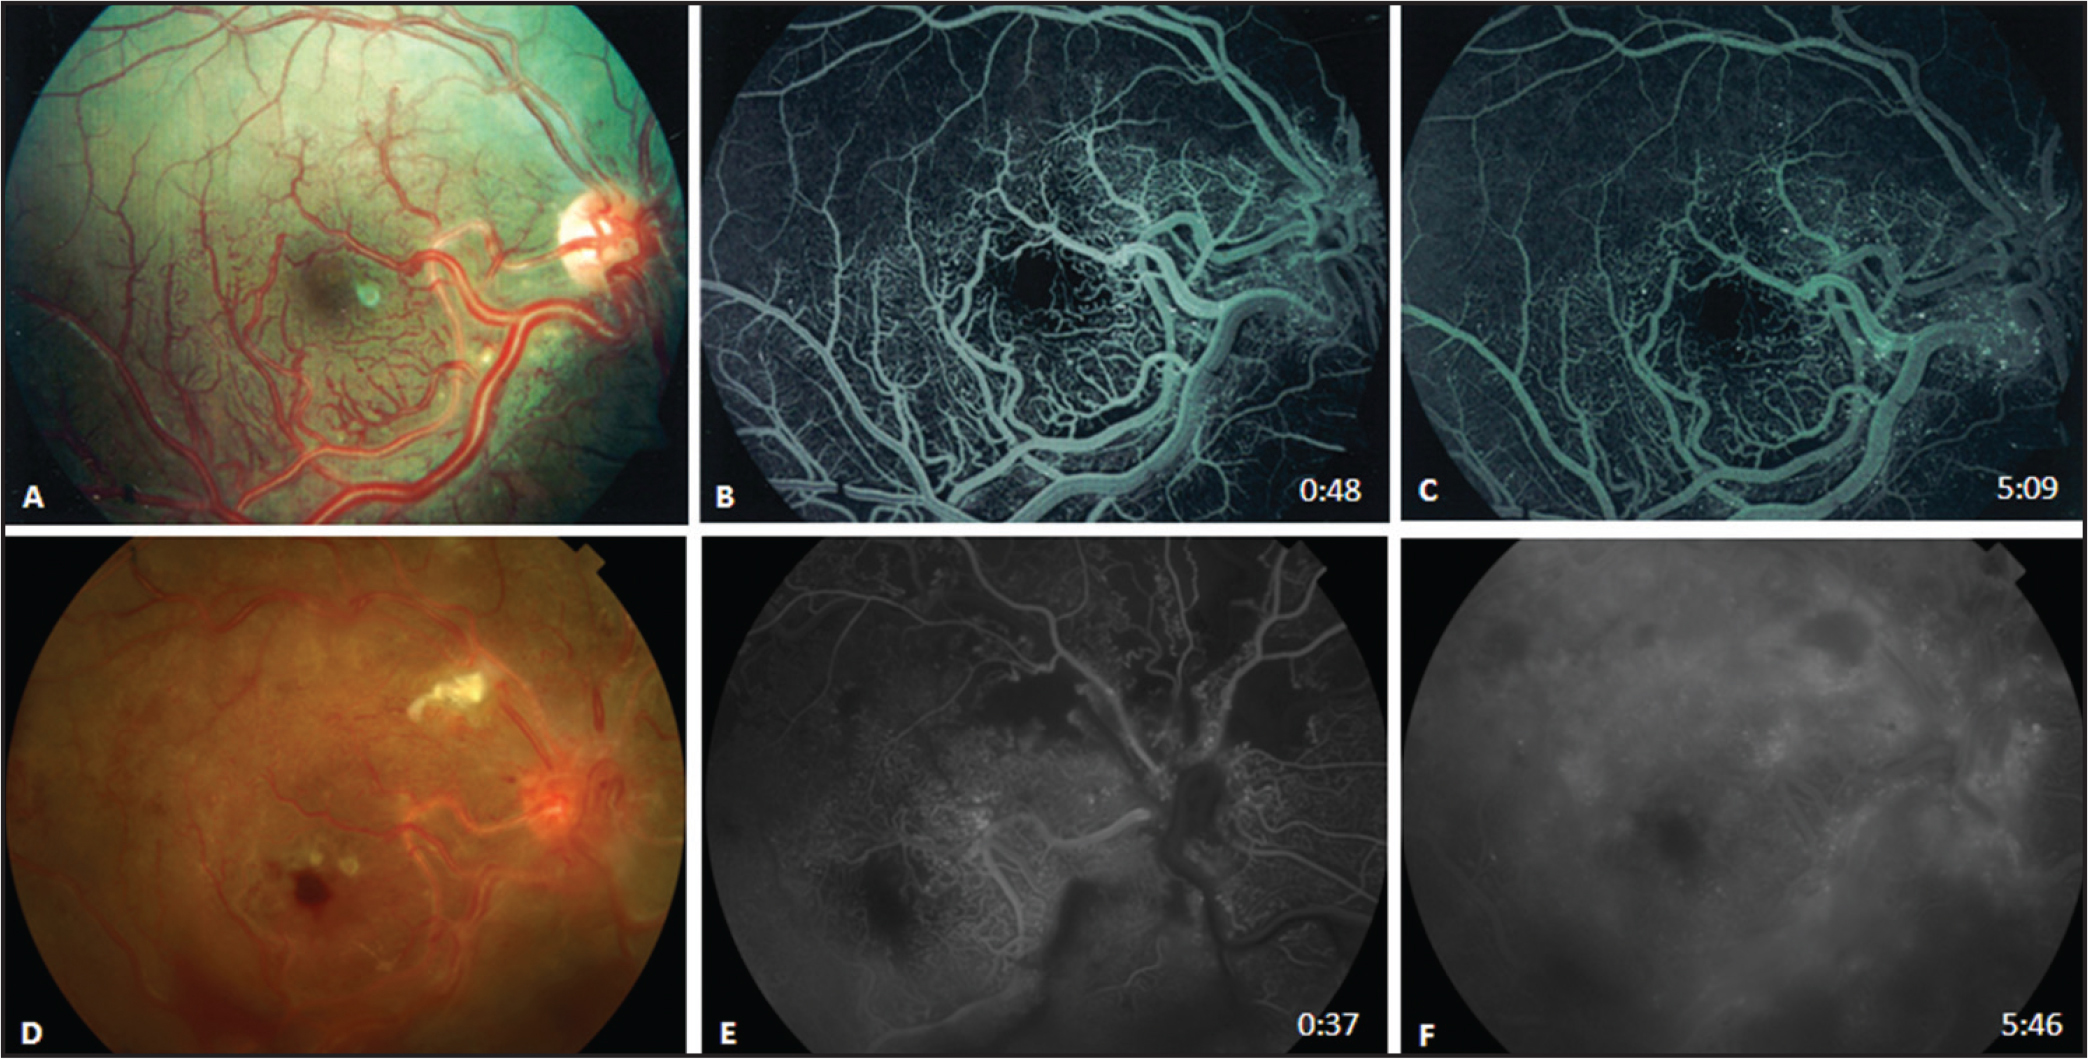 (A) Baseline color fundus photograph demonstrating grossly dilated vessels with abnormal capillary network consistent with arteriovenous malformation of the retina. (B) Baseline fluorescein angiography (early phase) demonstrating full perfusion of the posterior pole. (C) Fluorescein angiography (late phase) demonstrating the absence of leakage. (D) Fundus photograph demonstrating similar arteriovenous malformations now with vitreous and intraretinal hemorrhages, capillary drop-out, and cotton wool spots. (E) Fluorescein angiography (early phase) demonstrating capillary drop-out and macular leakage. (F) Fluorescein angiography (late phase) demonstrating diffuse late leakage.